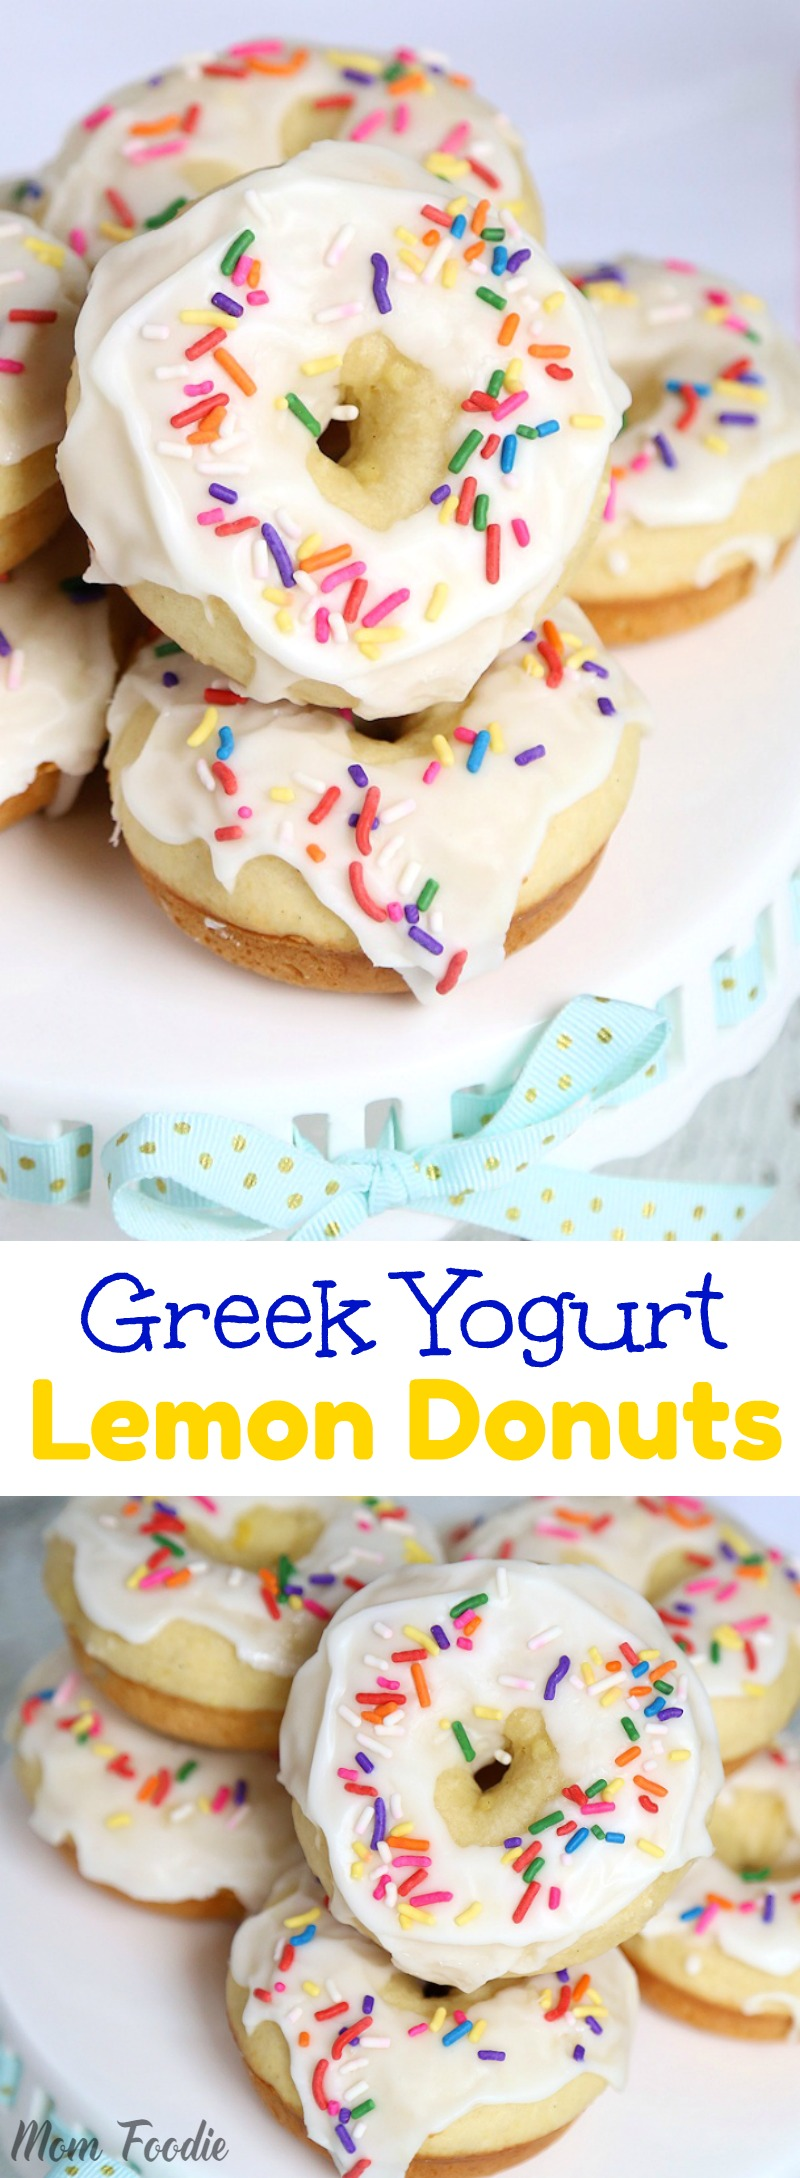 Greek Yogurt Lemon Donuts with Lemon Icing - easy recipe